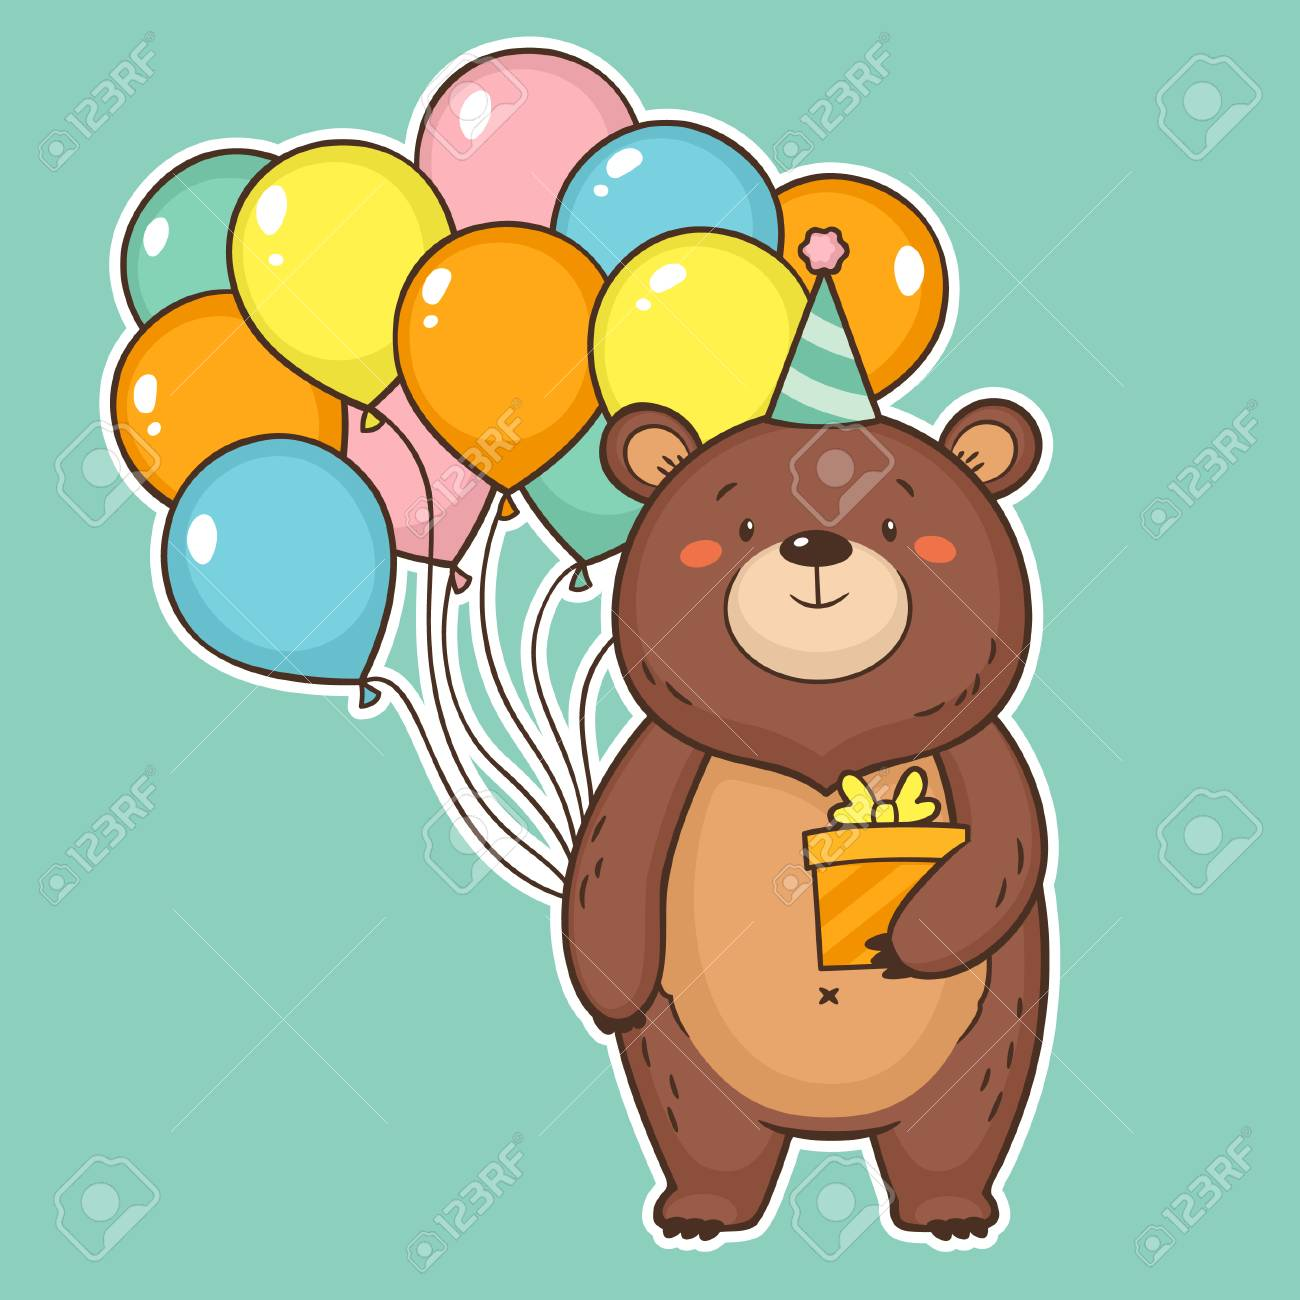 Cute Happy Birthday Card With Funny Bear Holding Air Balloons And A Gift Box